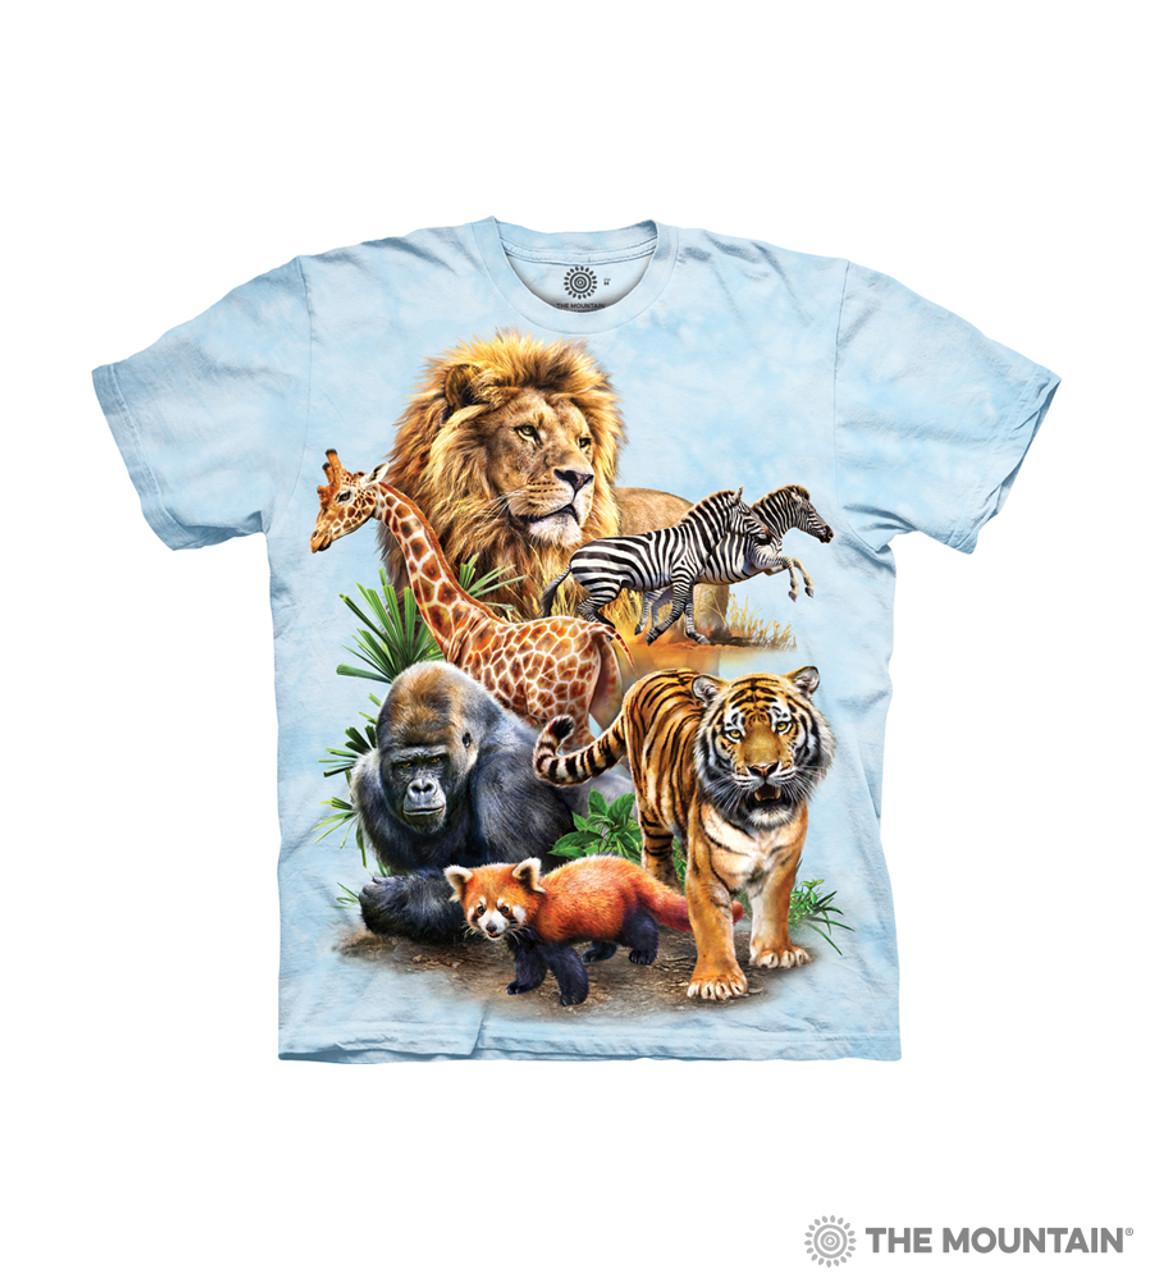 The Mountain Kids' T Shirt Zoo Collage